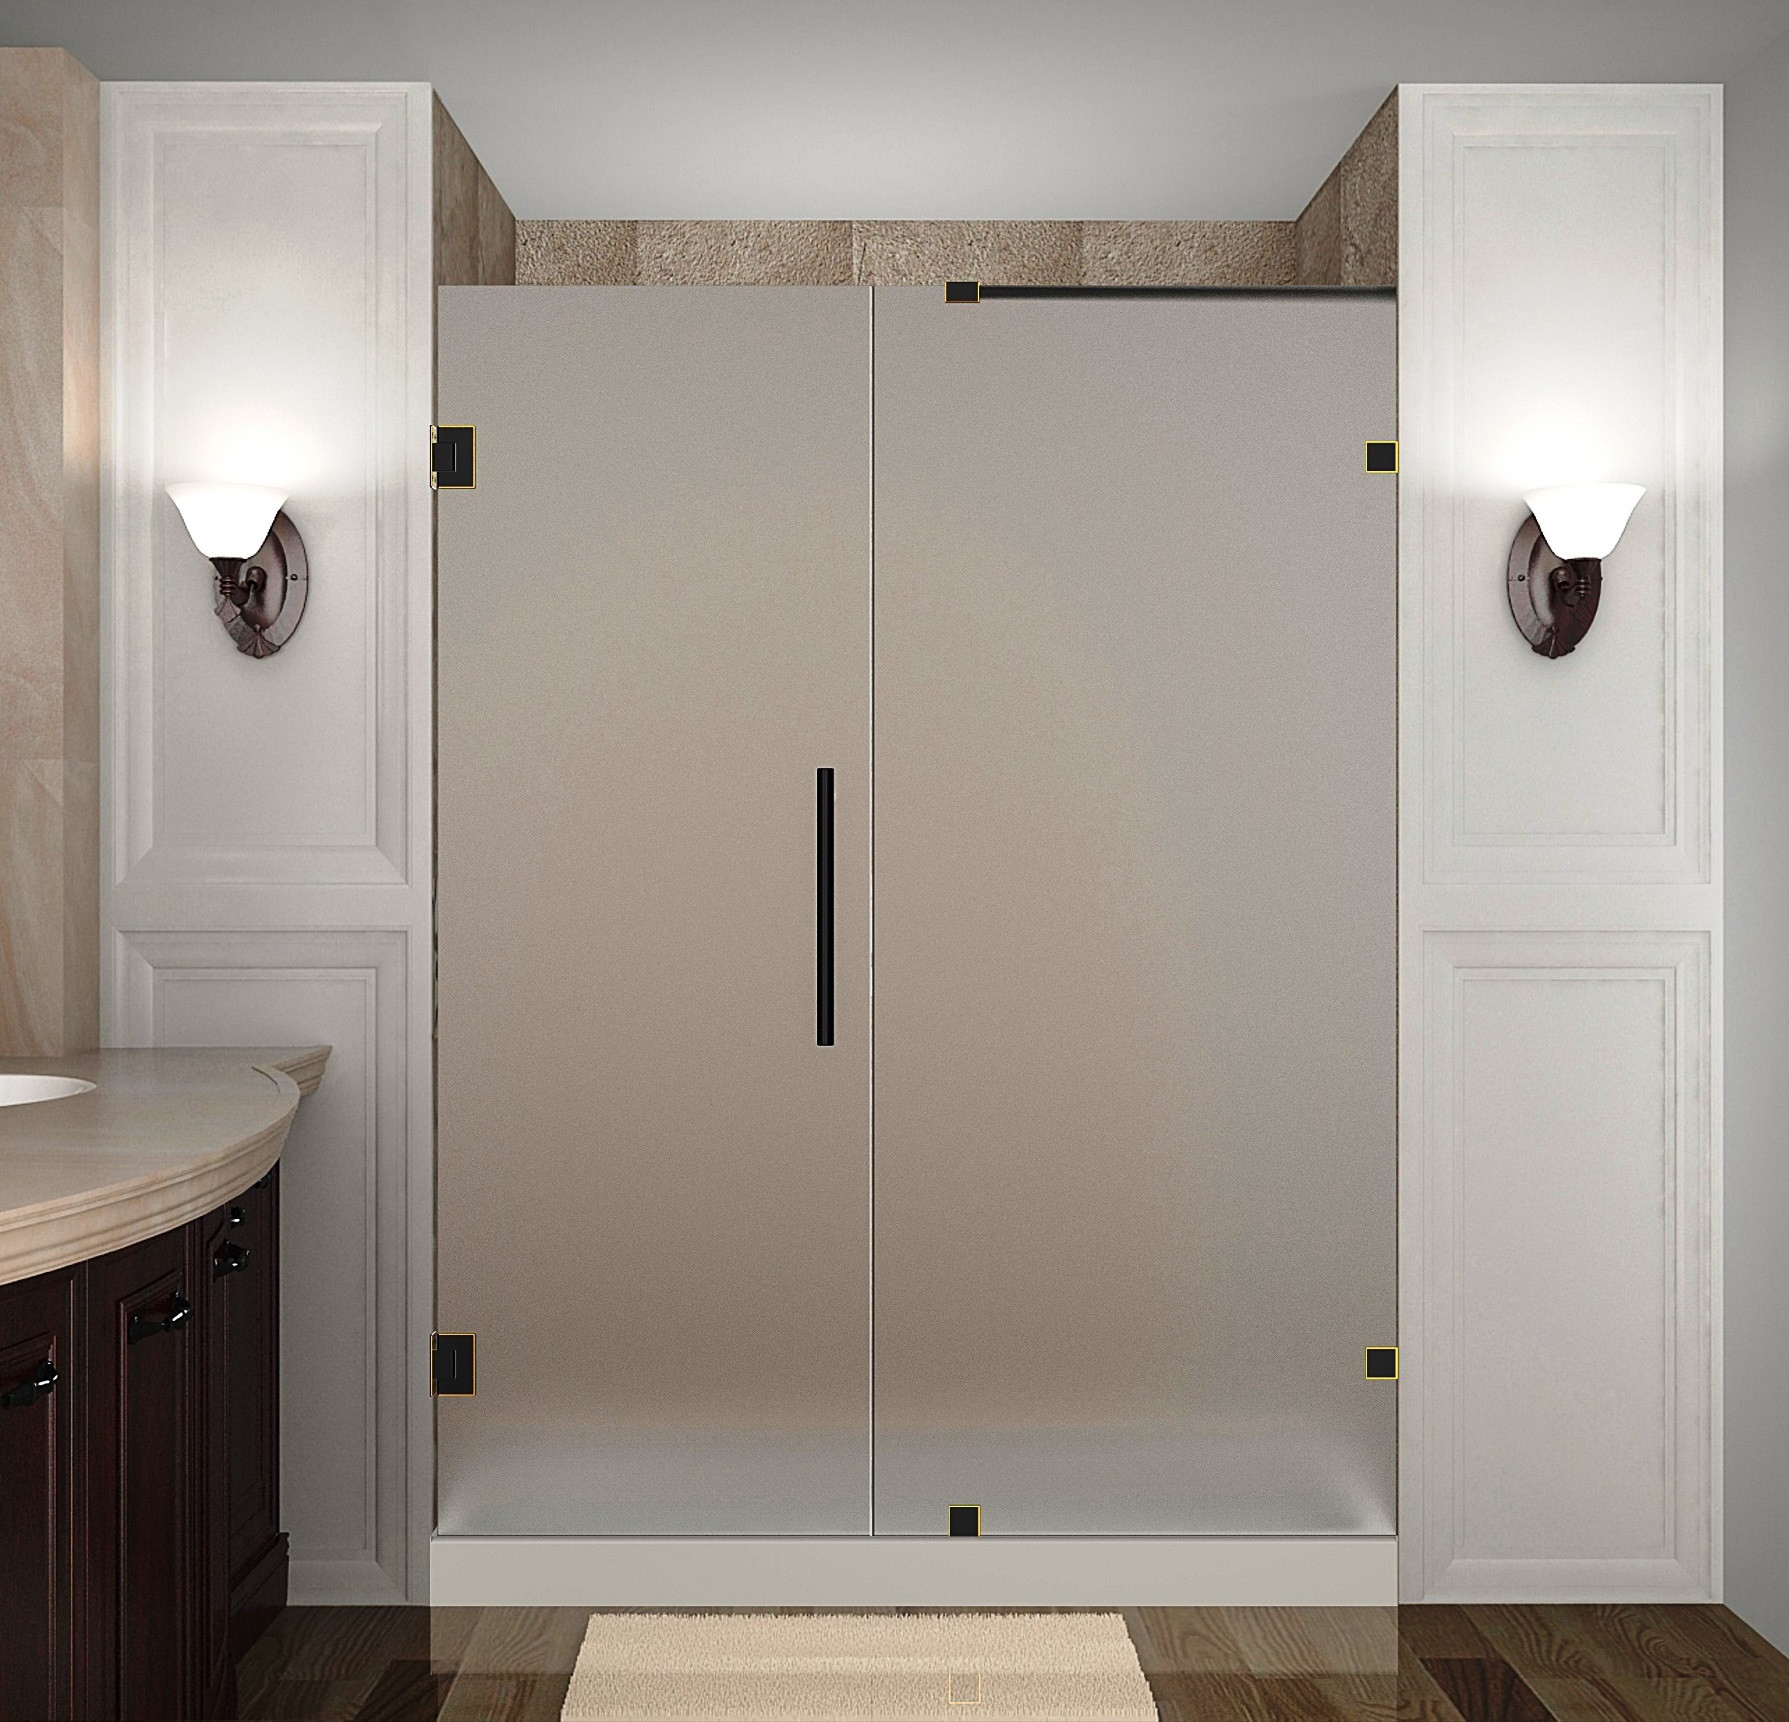 Aston Global SDR985F-ORB-62-10 Frameless Hinged Frosted Glass Shower Door In Oil Rubbed Bronze